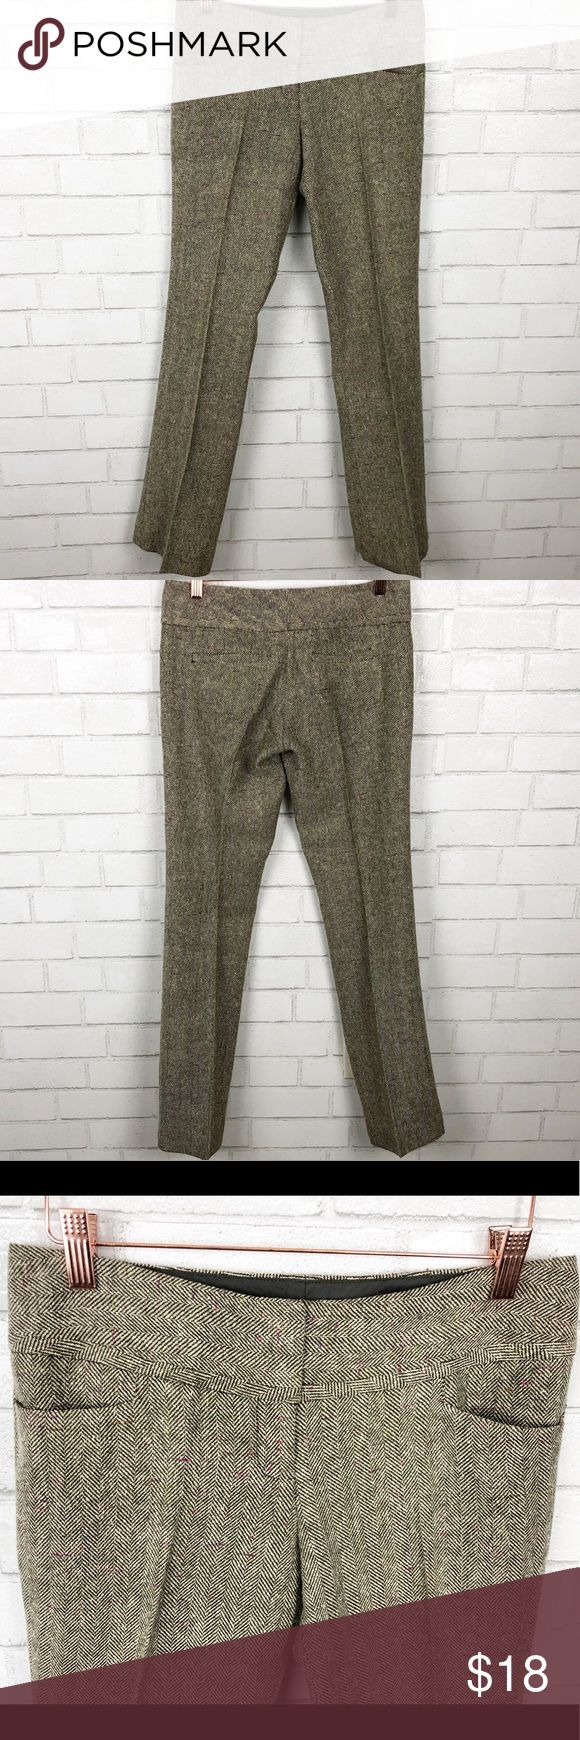 The Limited Drew Fit Tweed Trousers Size 2 The Limited Drew Fit Straight Leg Twe…